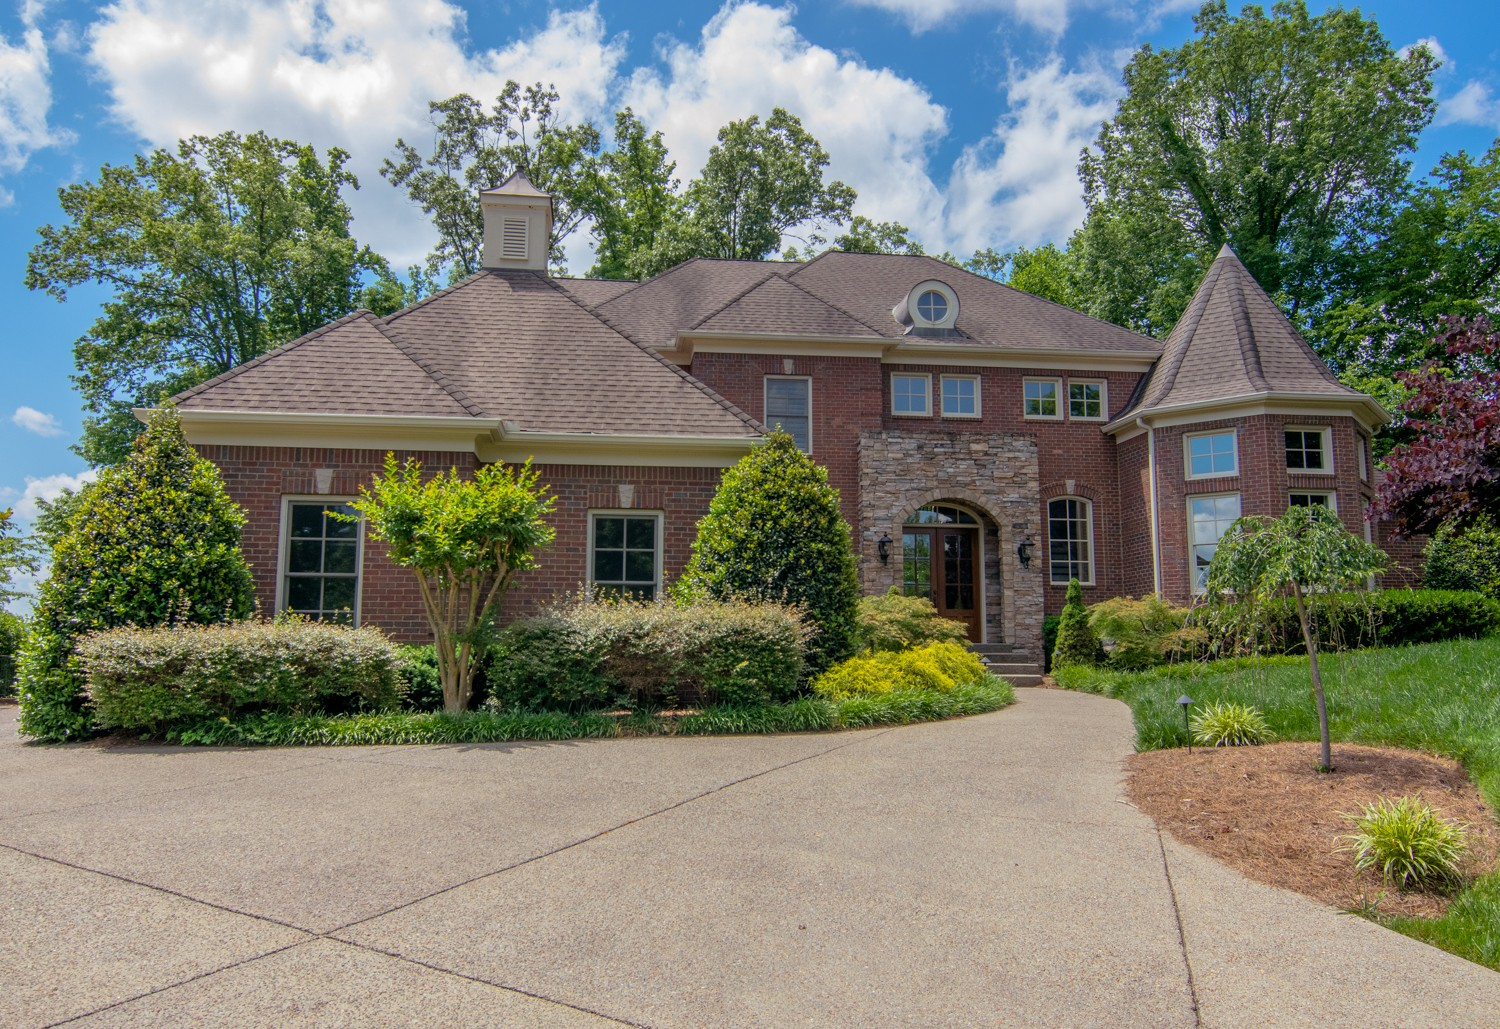 9615 Mitchell Pl, Brentwood, TN 37027 - Brentwood, TN real estate listing